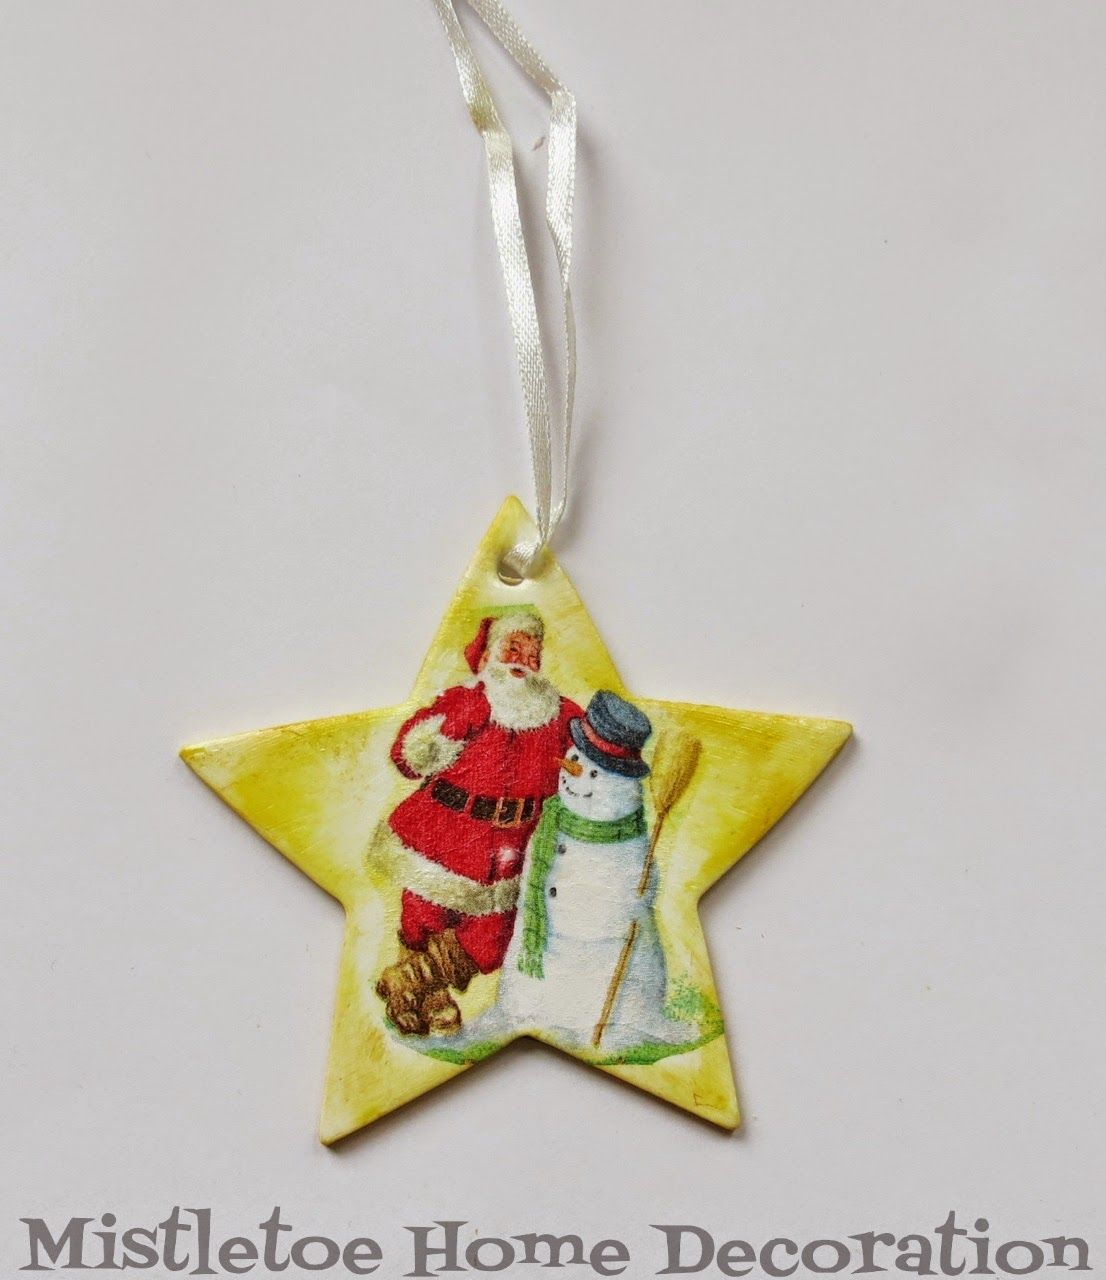 Decoupage with napkin - Christmas ornament - Santa and snowman on a yellow star